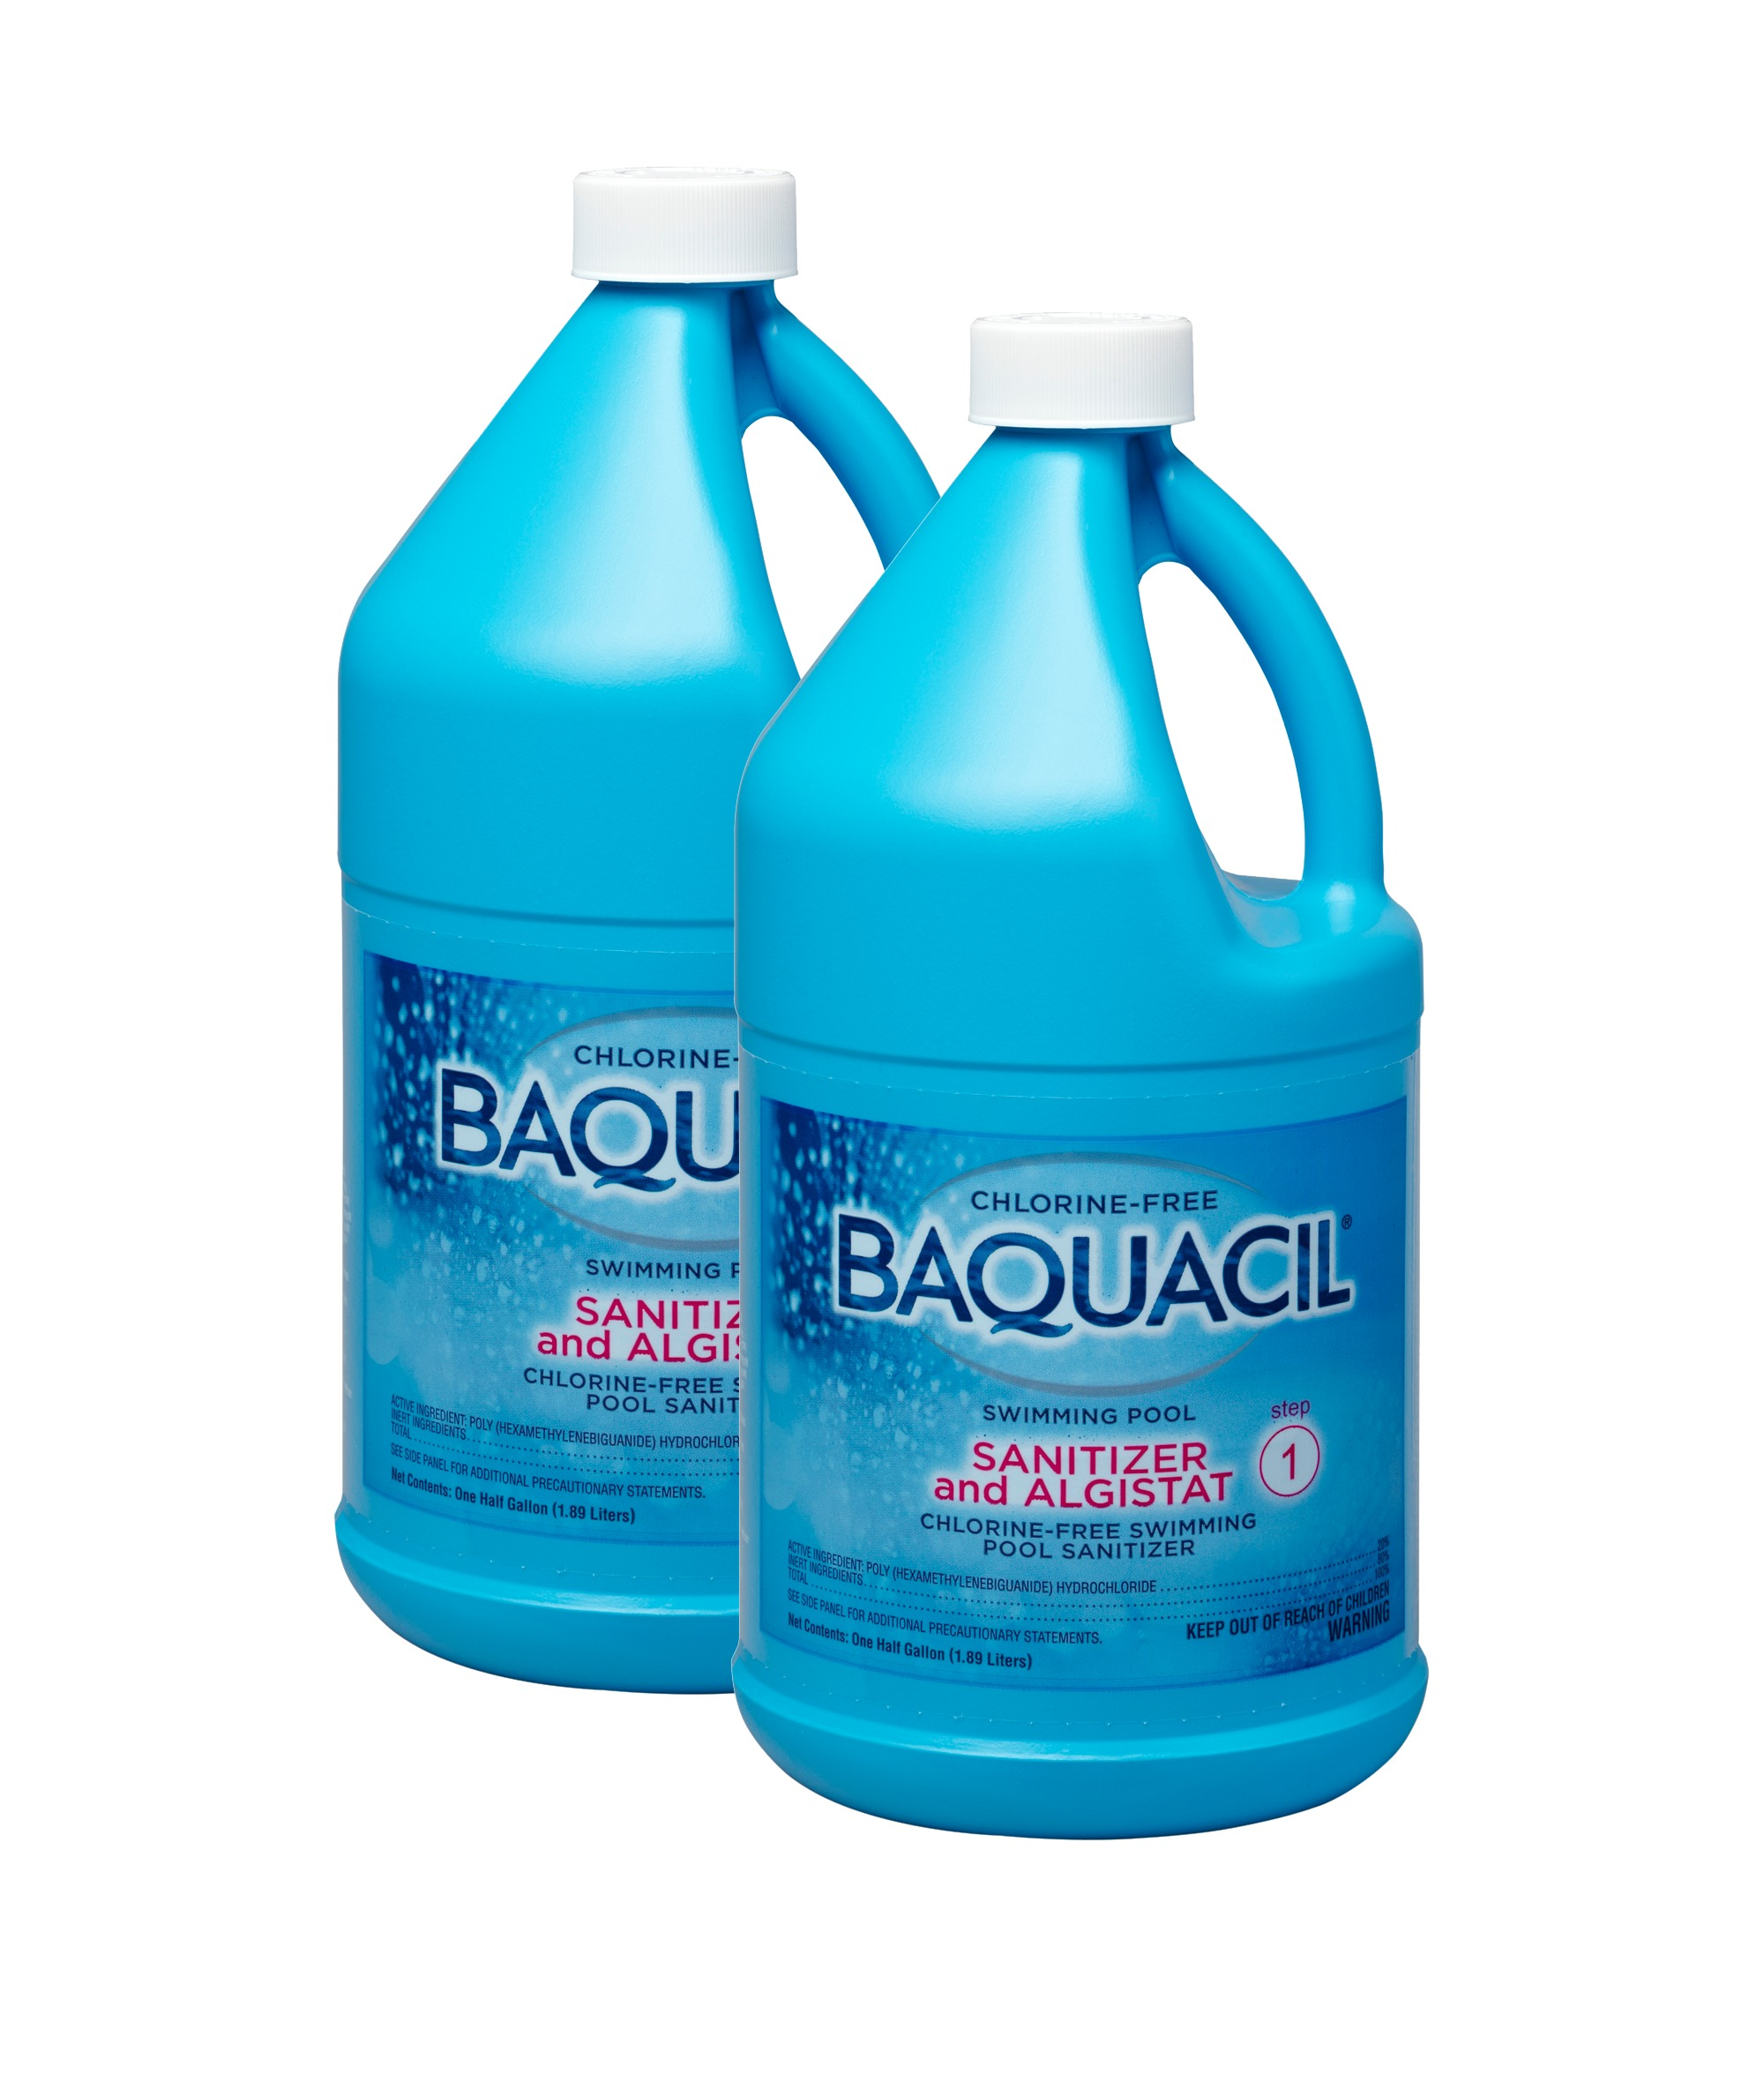 Baquacil Swimming Pool Sanitizer Algistat Ebay